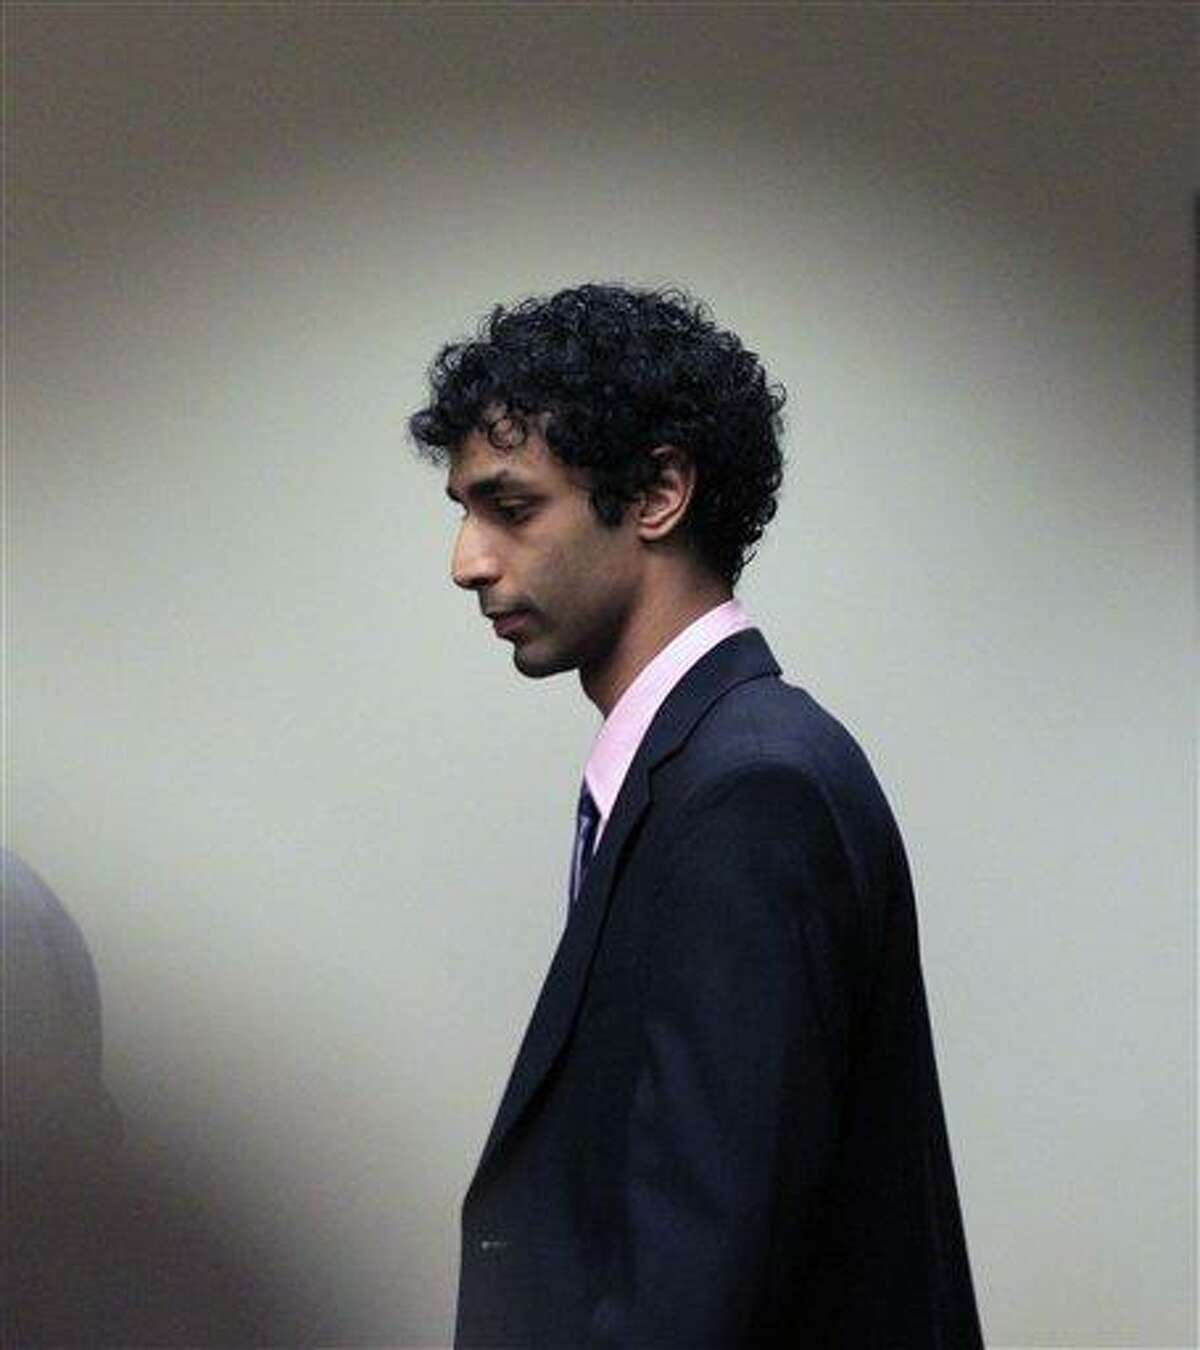 Dharun Ravi arrives at court for his sentencing hearing in New Brunswick, N.J., Monday. Ravi, a former Rutgers University student who used a webcam to watch his roommate kiss another man days before the roommate killed himself, was sentenced Monday to 30 days in jail. A judge also gave 20-year-old Dharun Ravi three years of probation. Associated Press